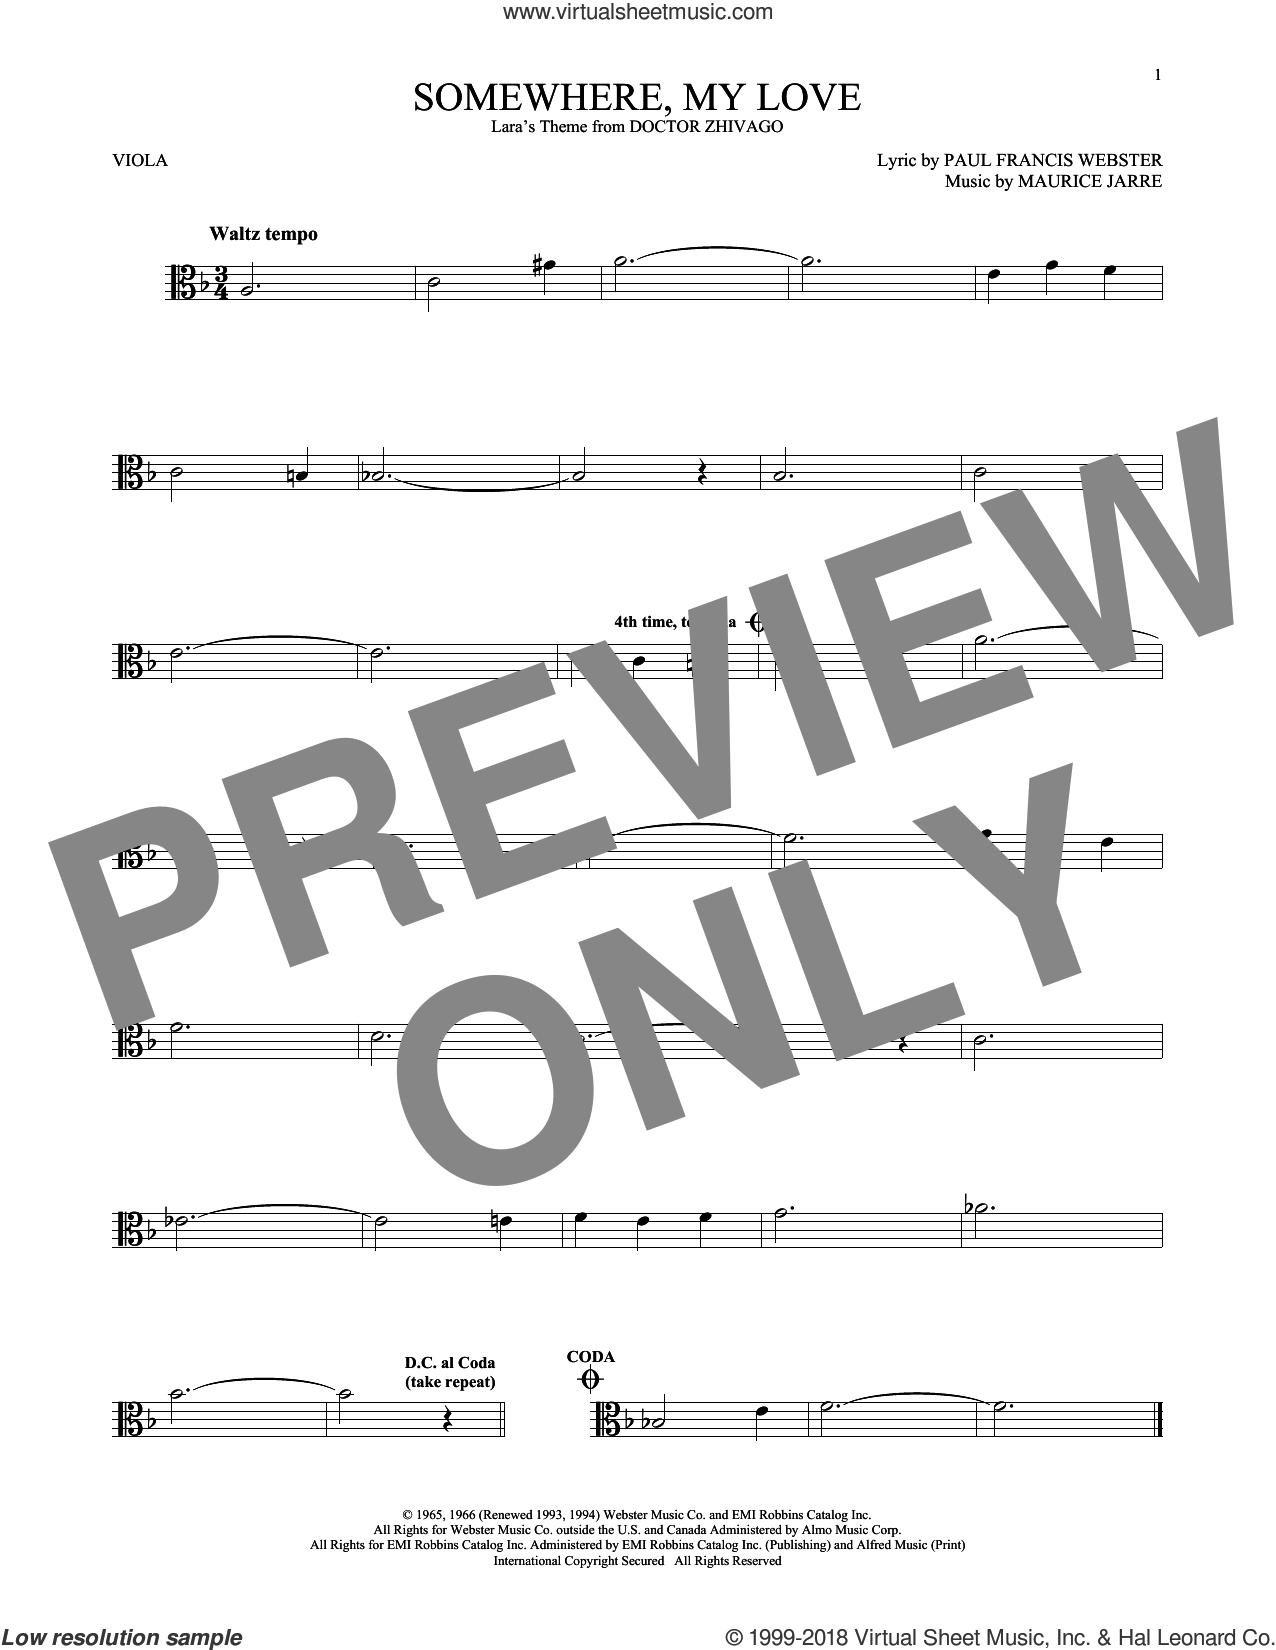 Somewhere, My Love sheet music for viola solo by Paul Francis Webster and Maurice Jarre, intermediate skill level